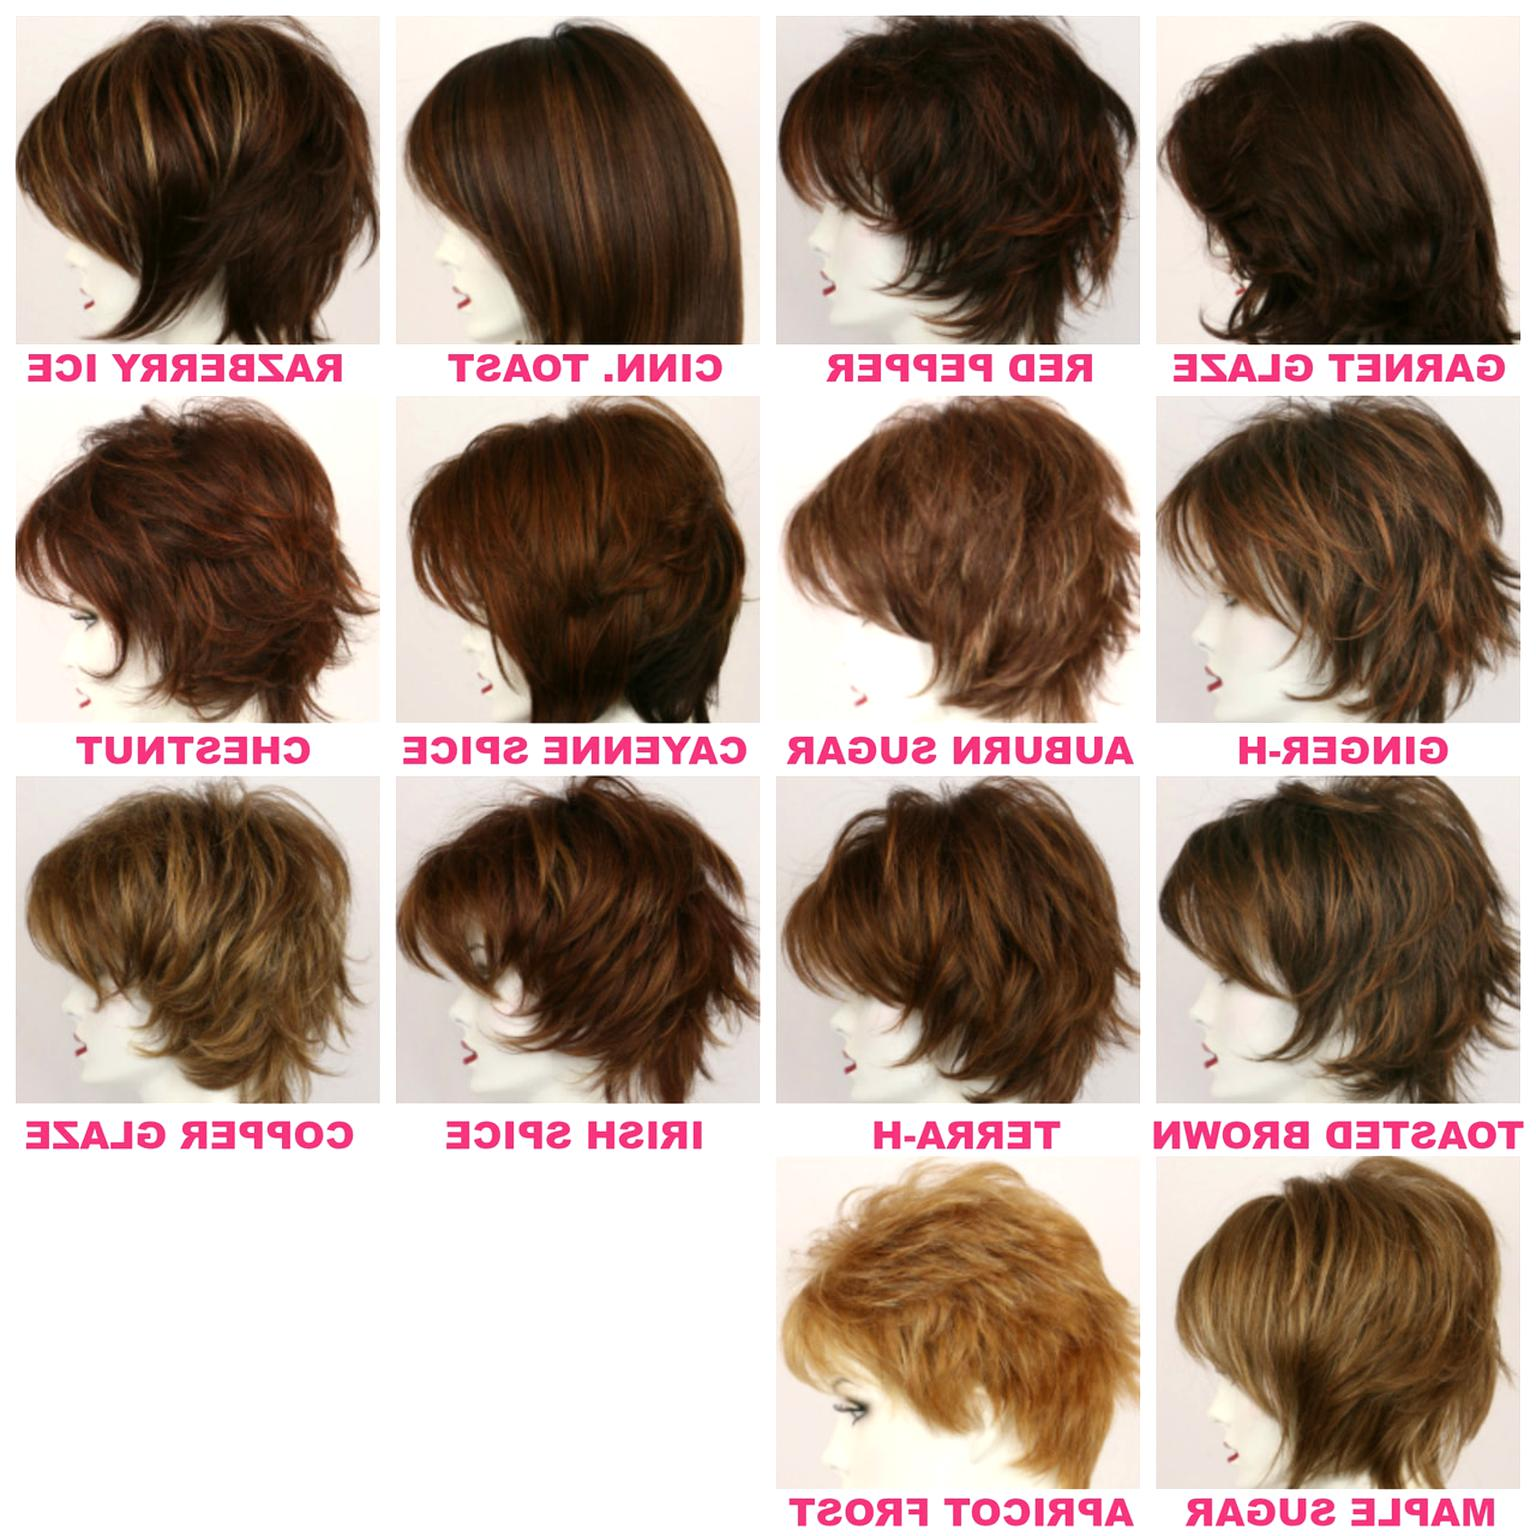 hair color swatches for sale